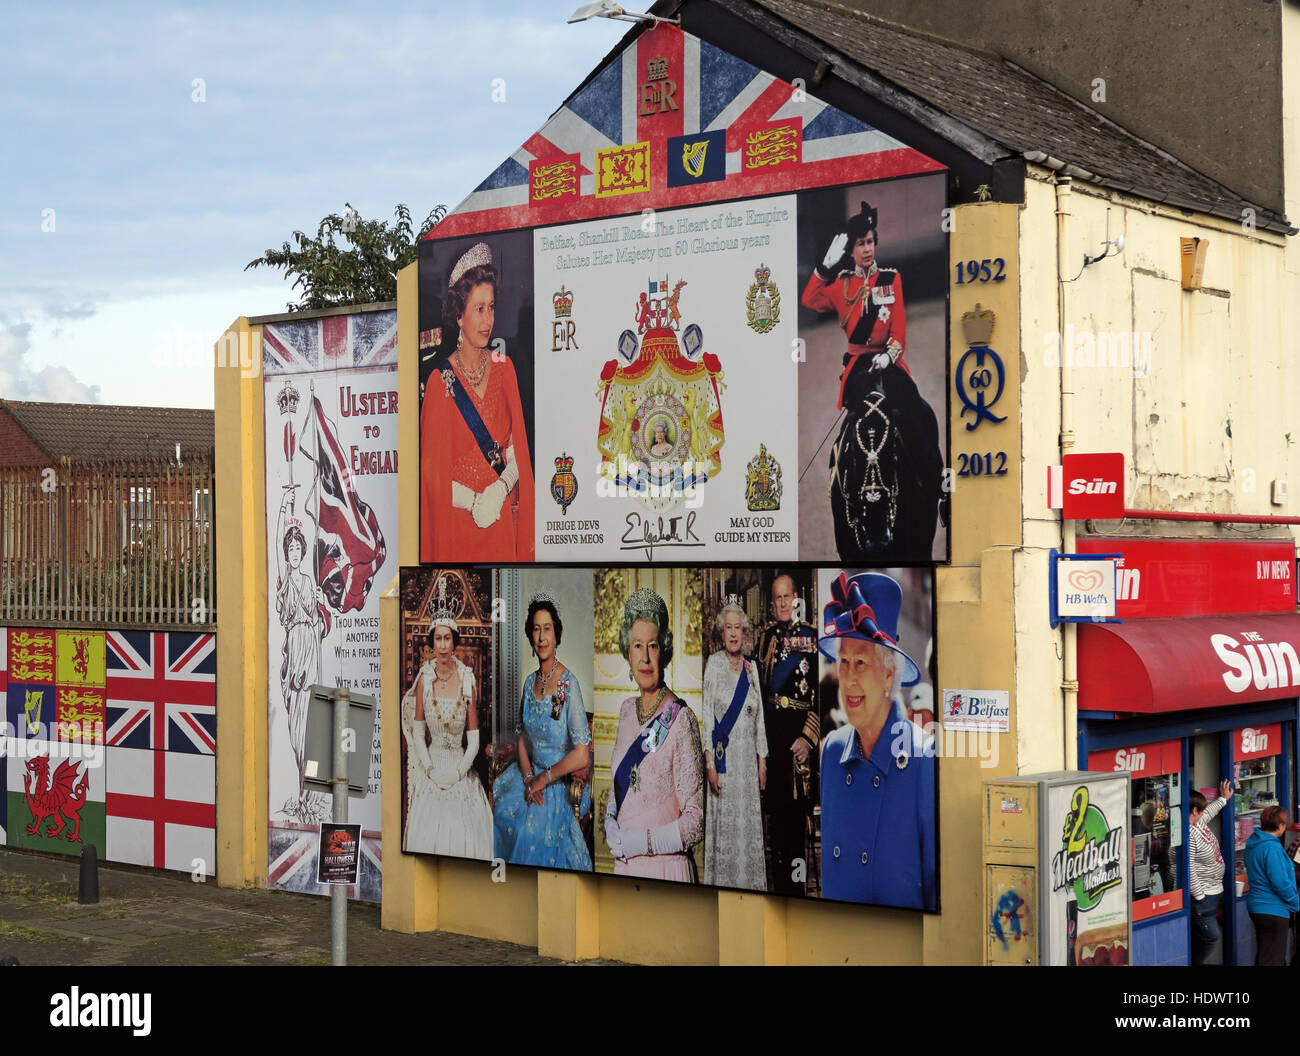 60 years of Queen Elizabeth II Shankill Road West Belfast,Northern Ireland,UK - Stock Image